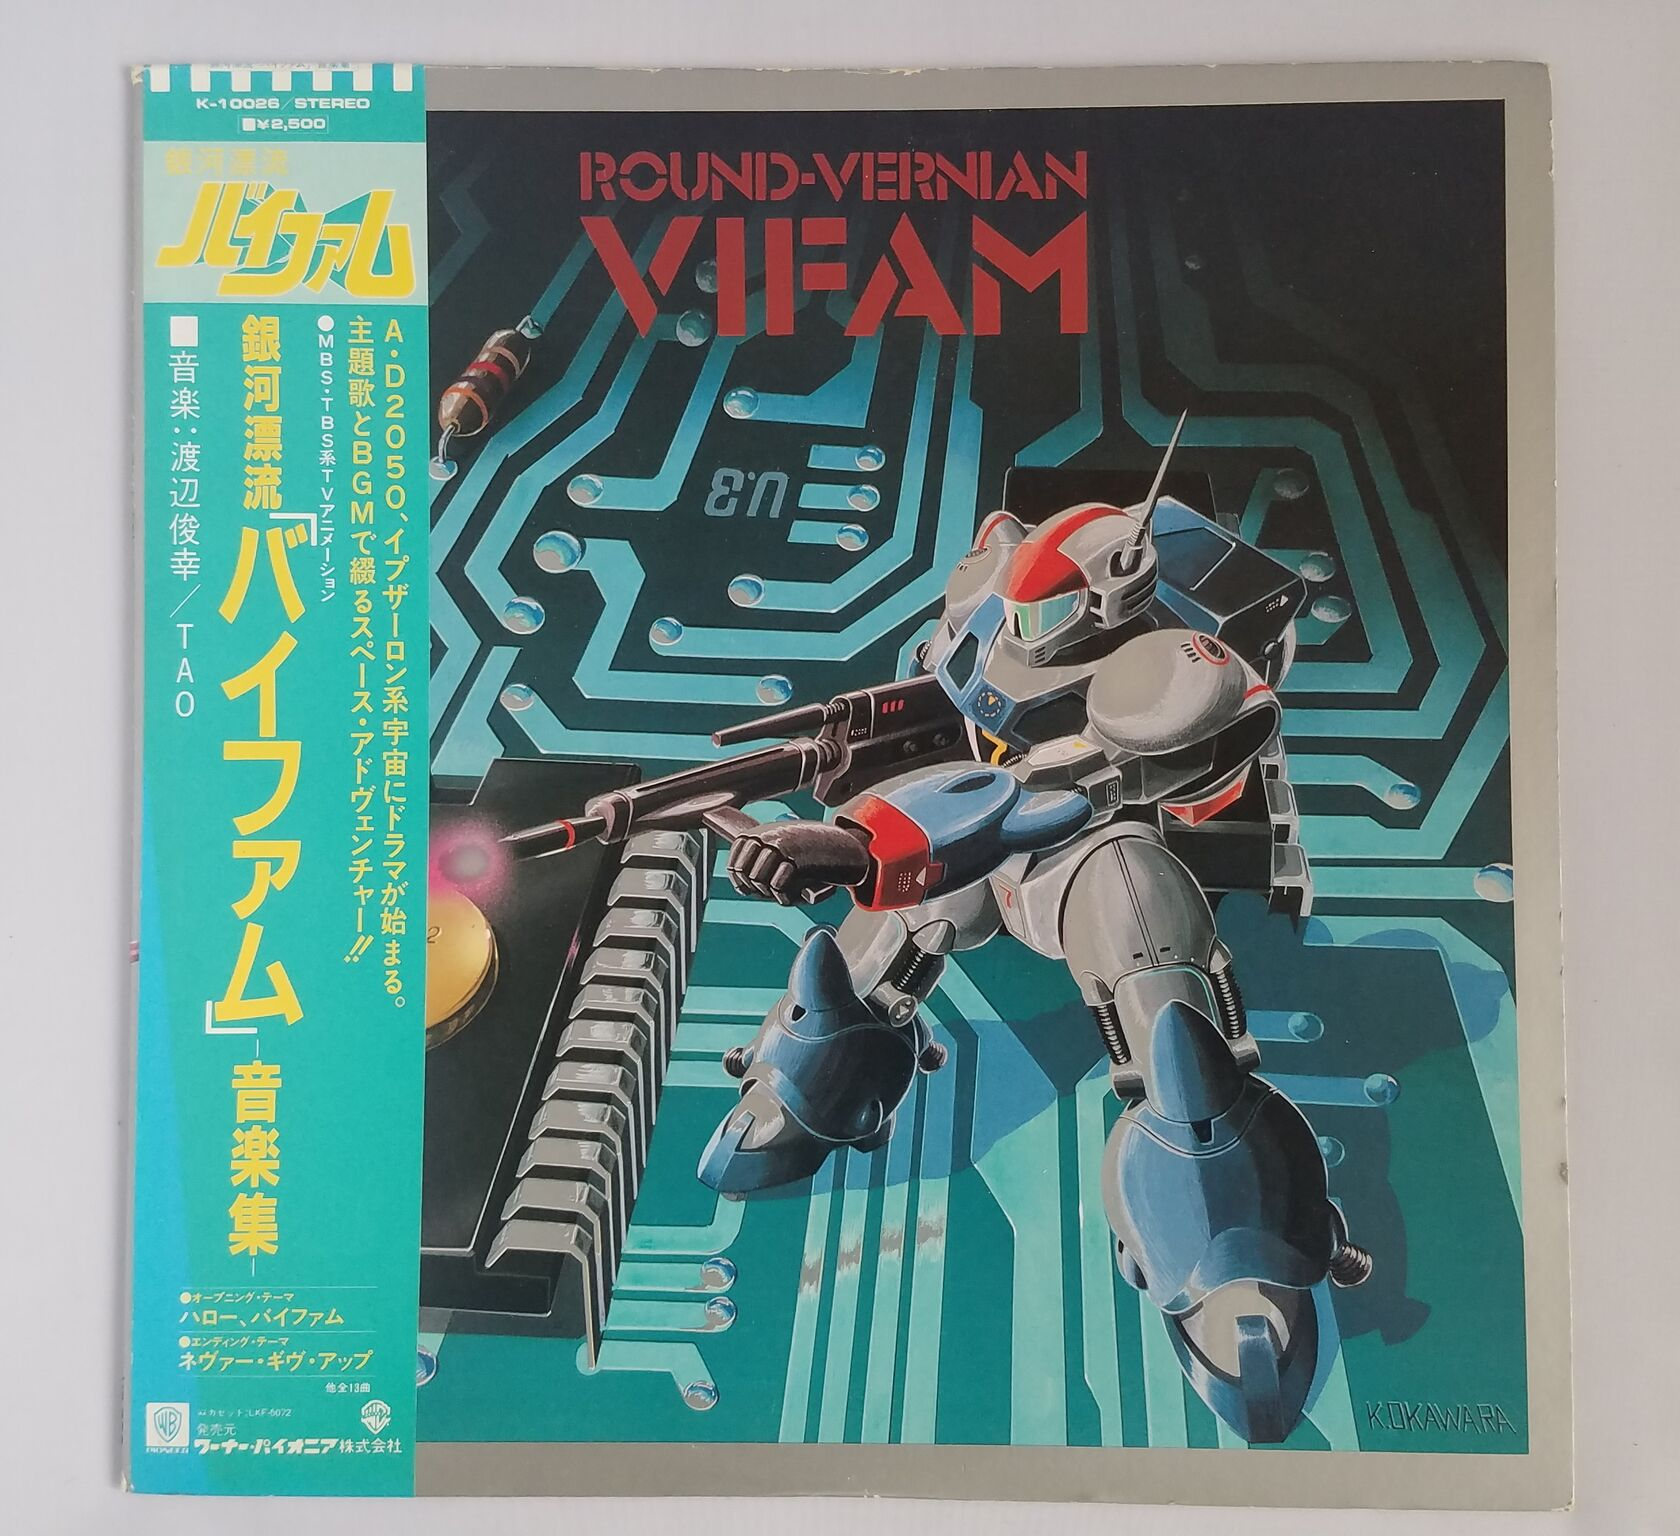 Round-Vernian Vifam Soundtrack (Jazz-Funk / Samples)